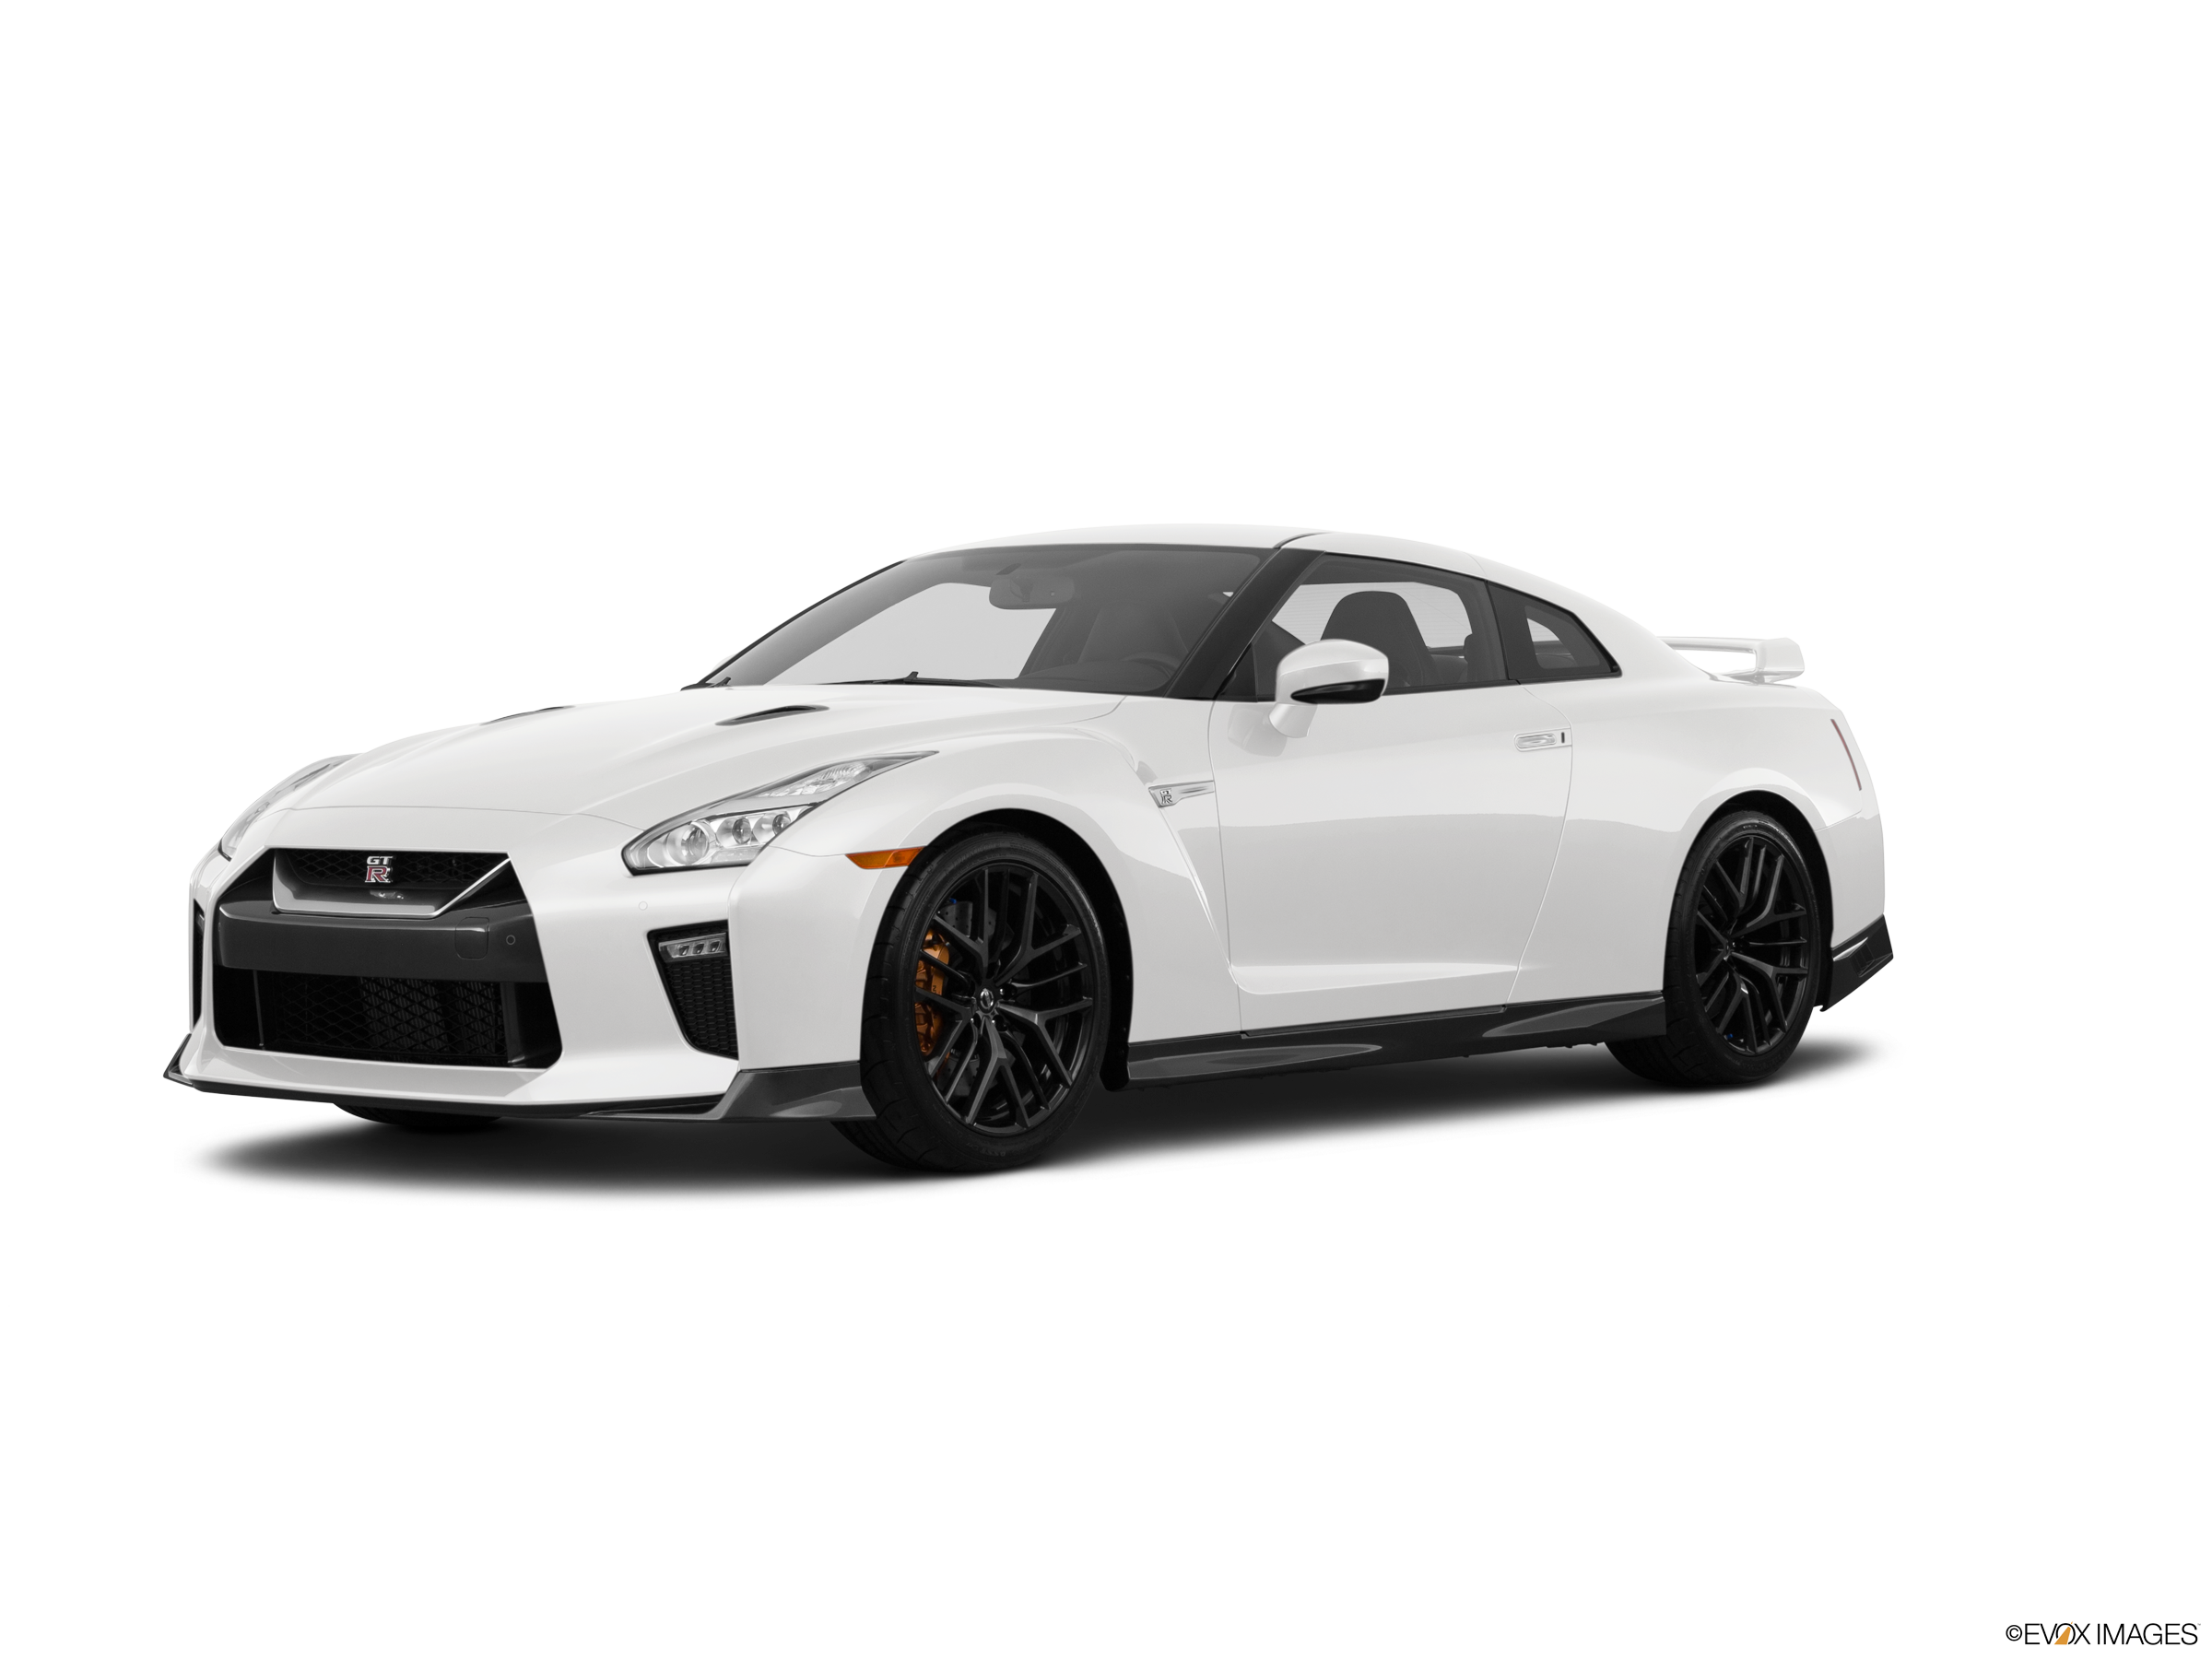 Highest Horsepower Coupes of 2019 - 2019 Nissan GT-R